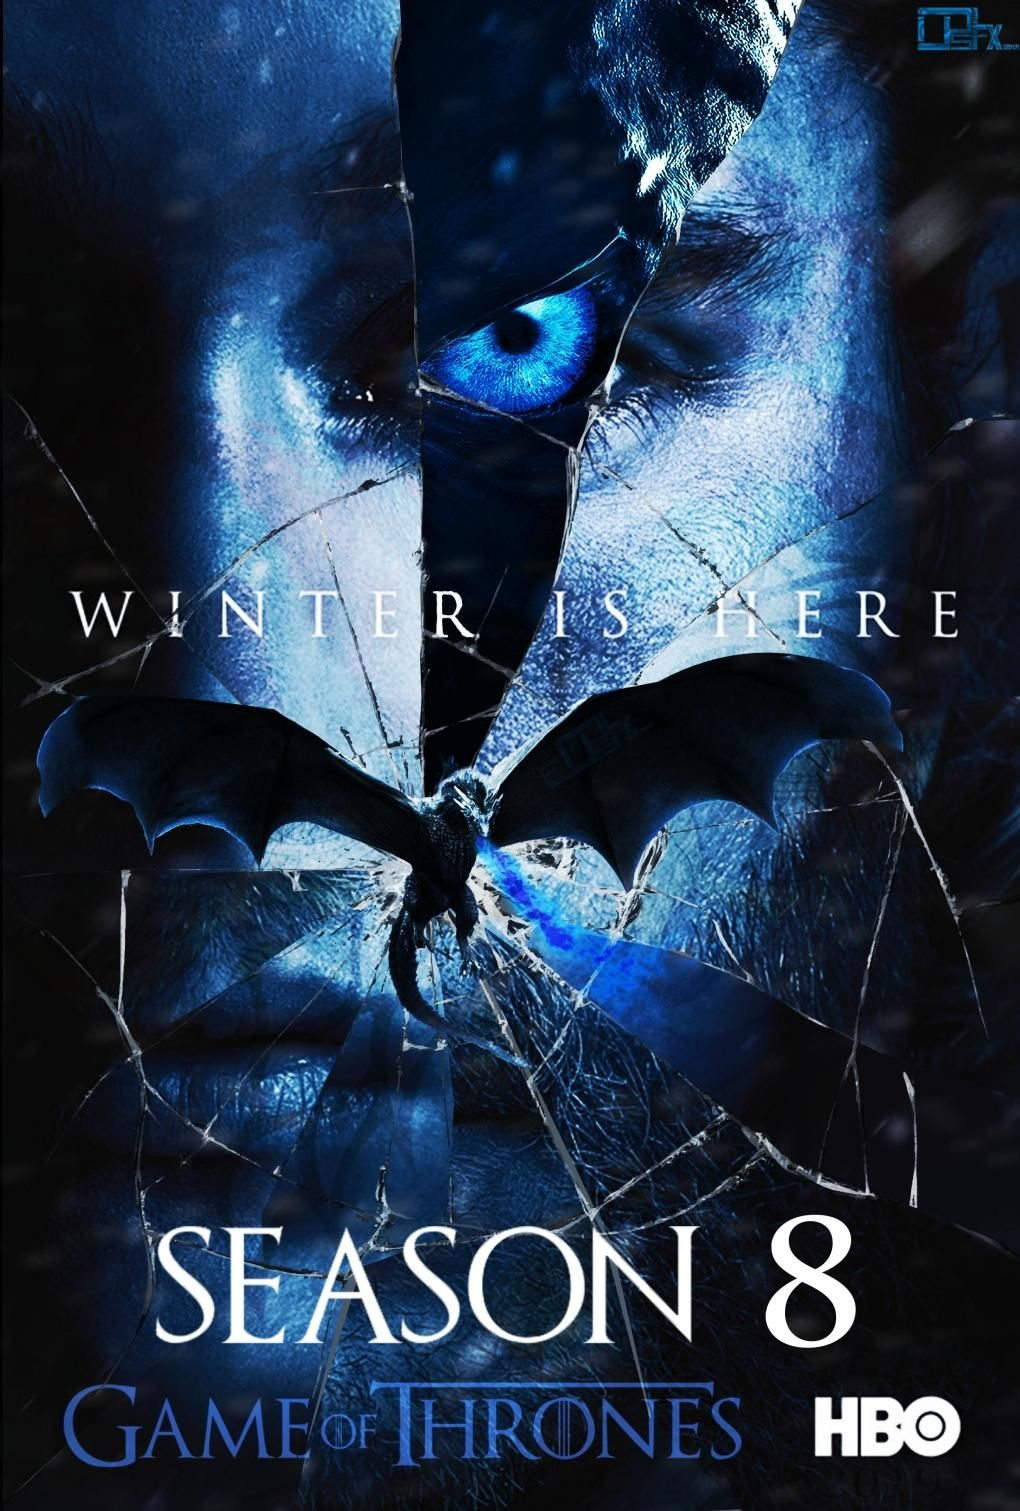 Game Of Thrones Saison 8 Episode 4 Vf Streaming : thrones, saison, episode, streaming, Serie, Thrones, Trône, Saison, Streaming, Thrones,, Affiches, Série